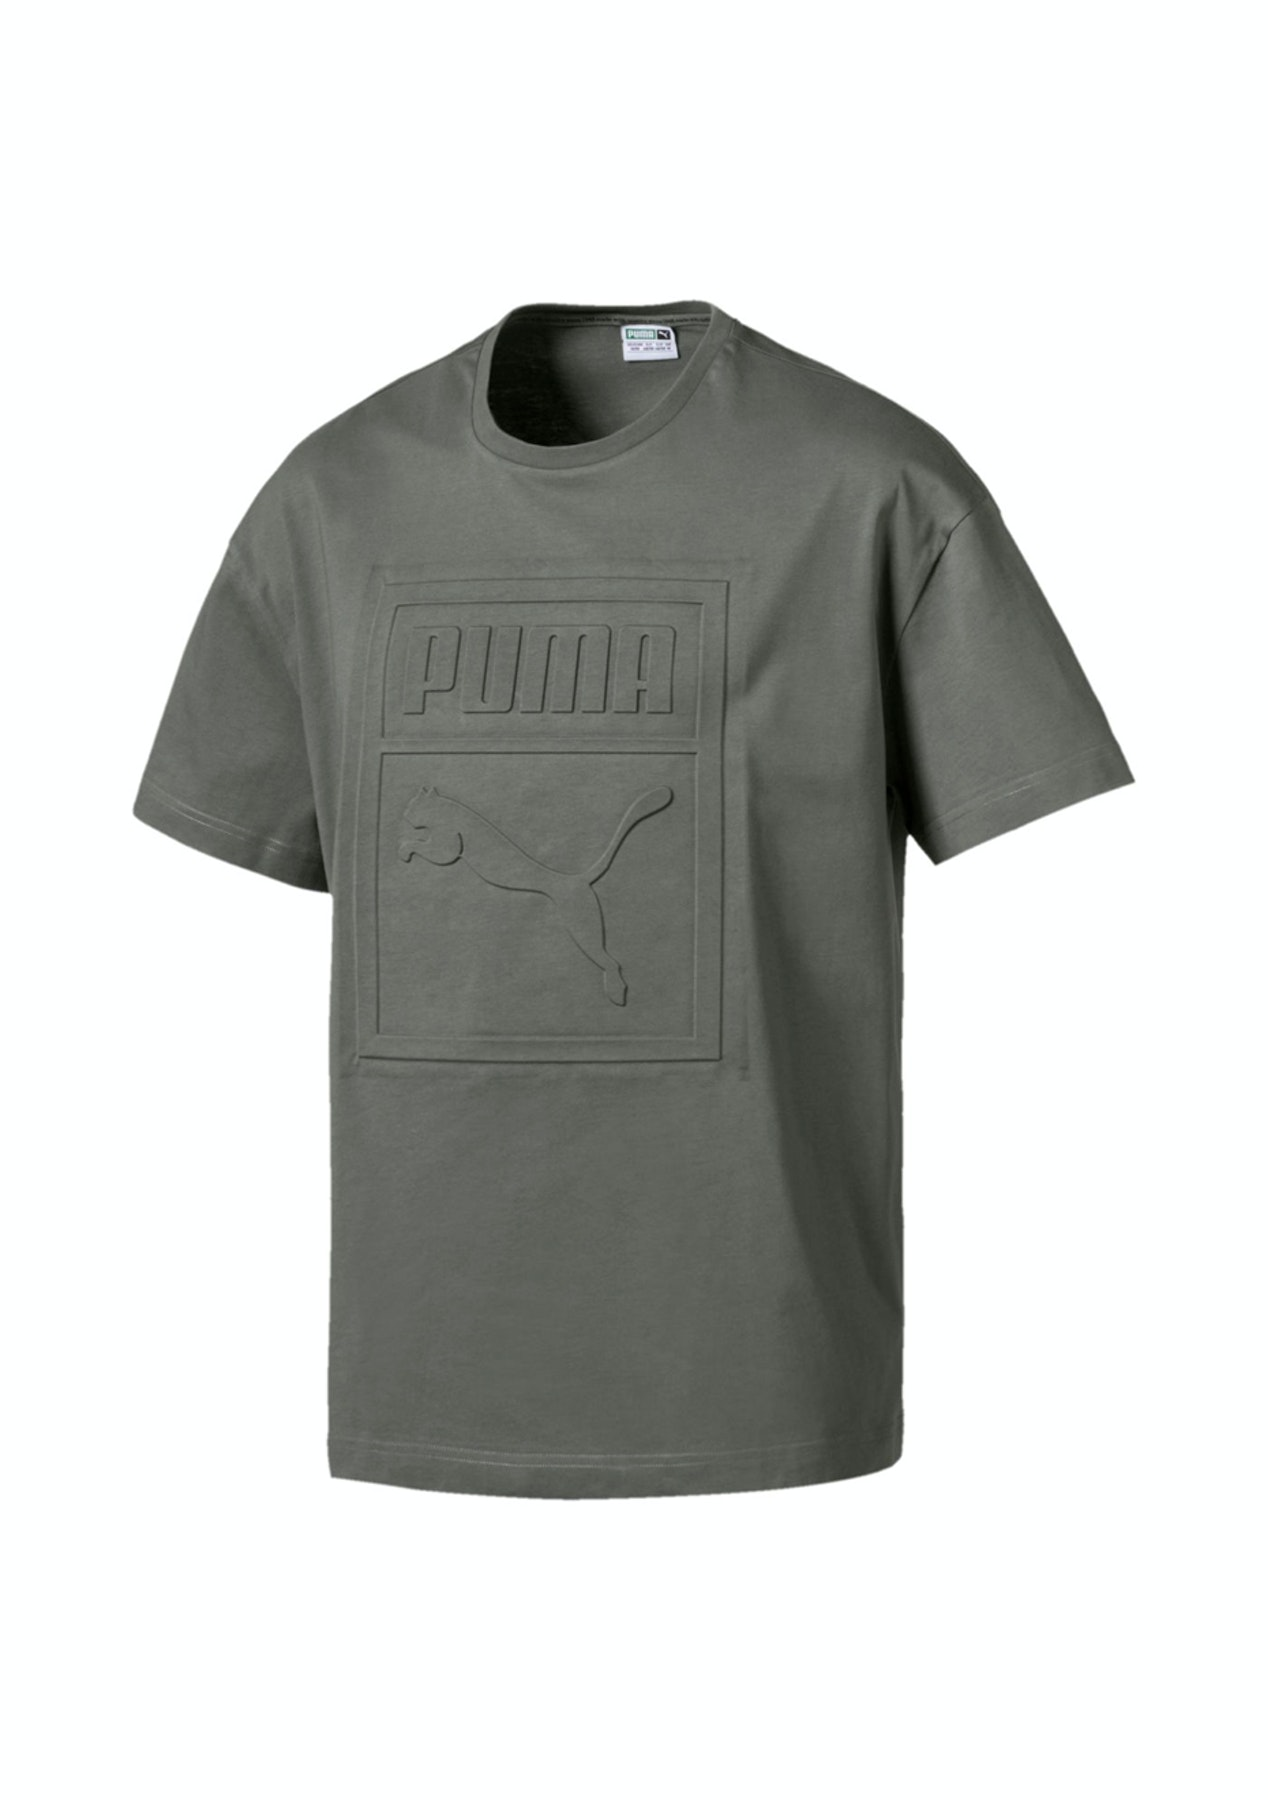 5455d27a1523 Puma Mens - Archive Embossed Print Tee - Castor Grey - Free shipping Winter  Activewear - Onceit